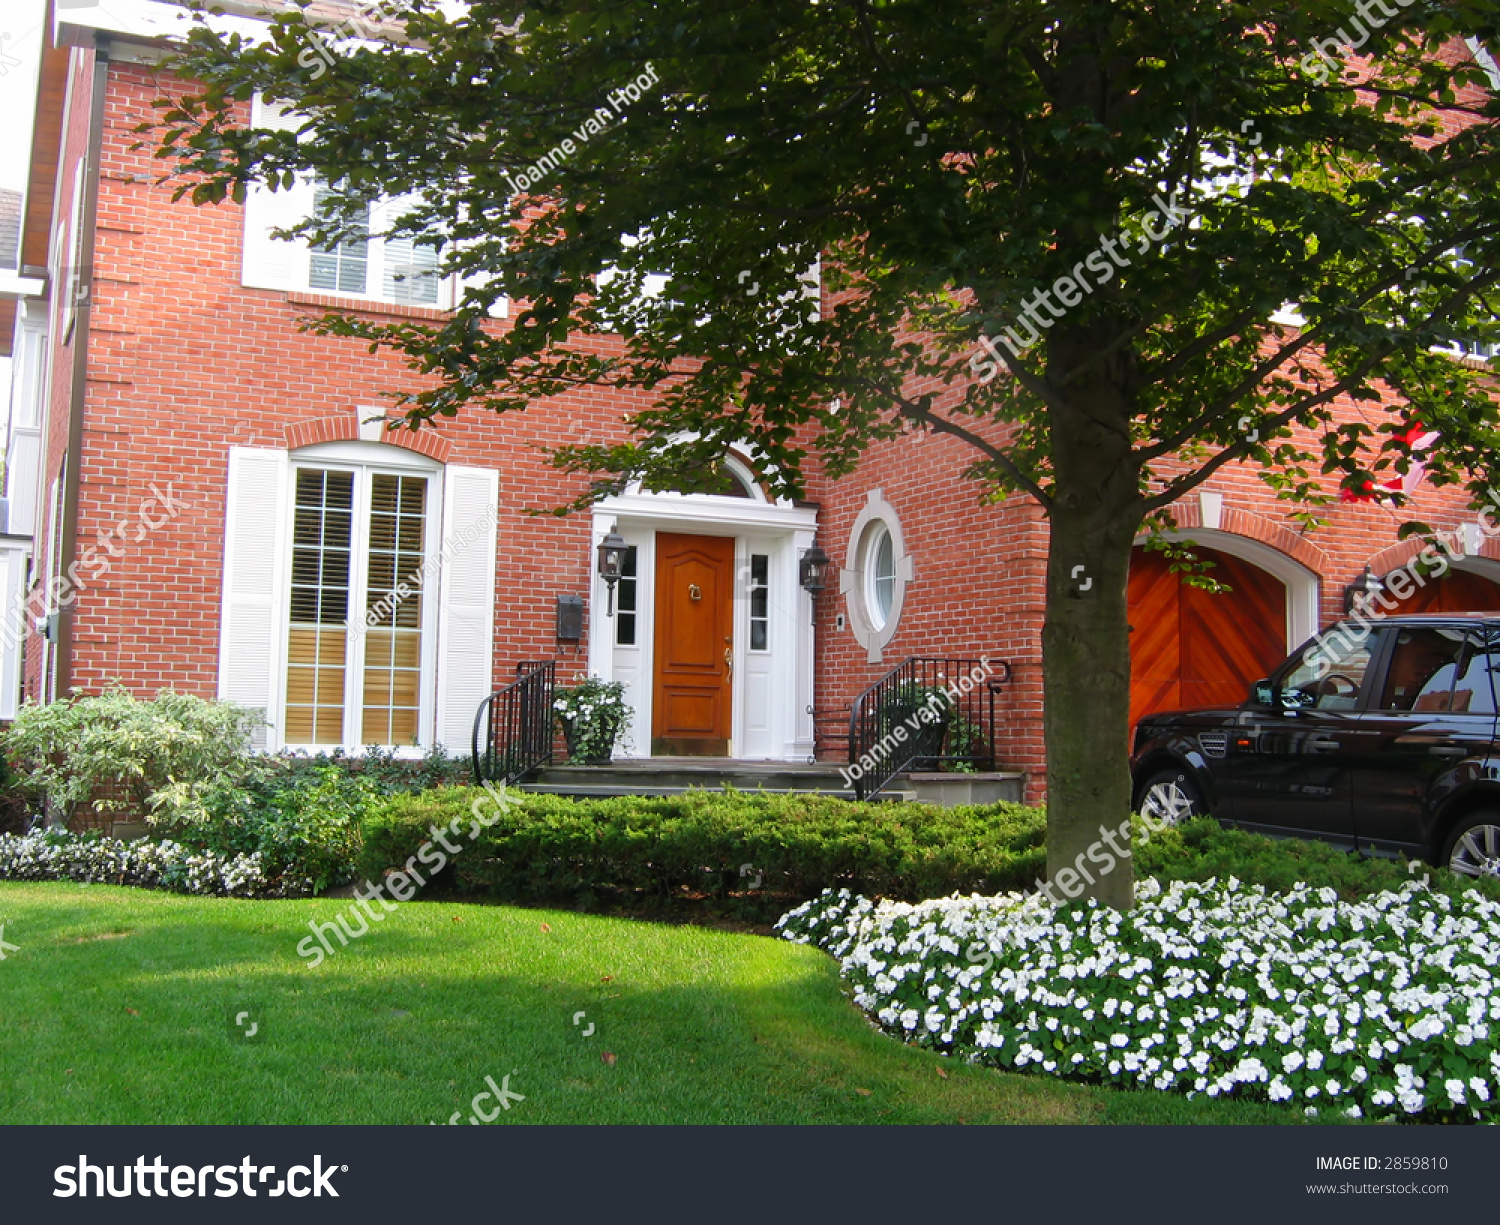 Bright Green House Red Brick House With White Shutters And Bright Green Manicured Lawn